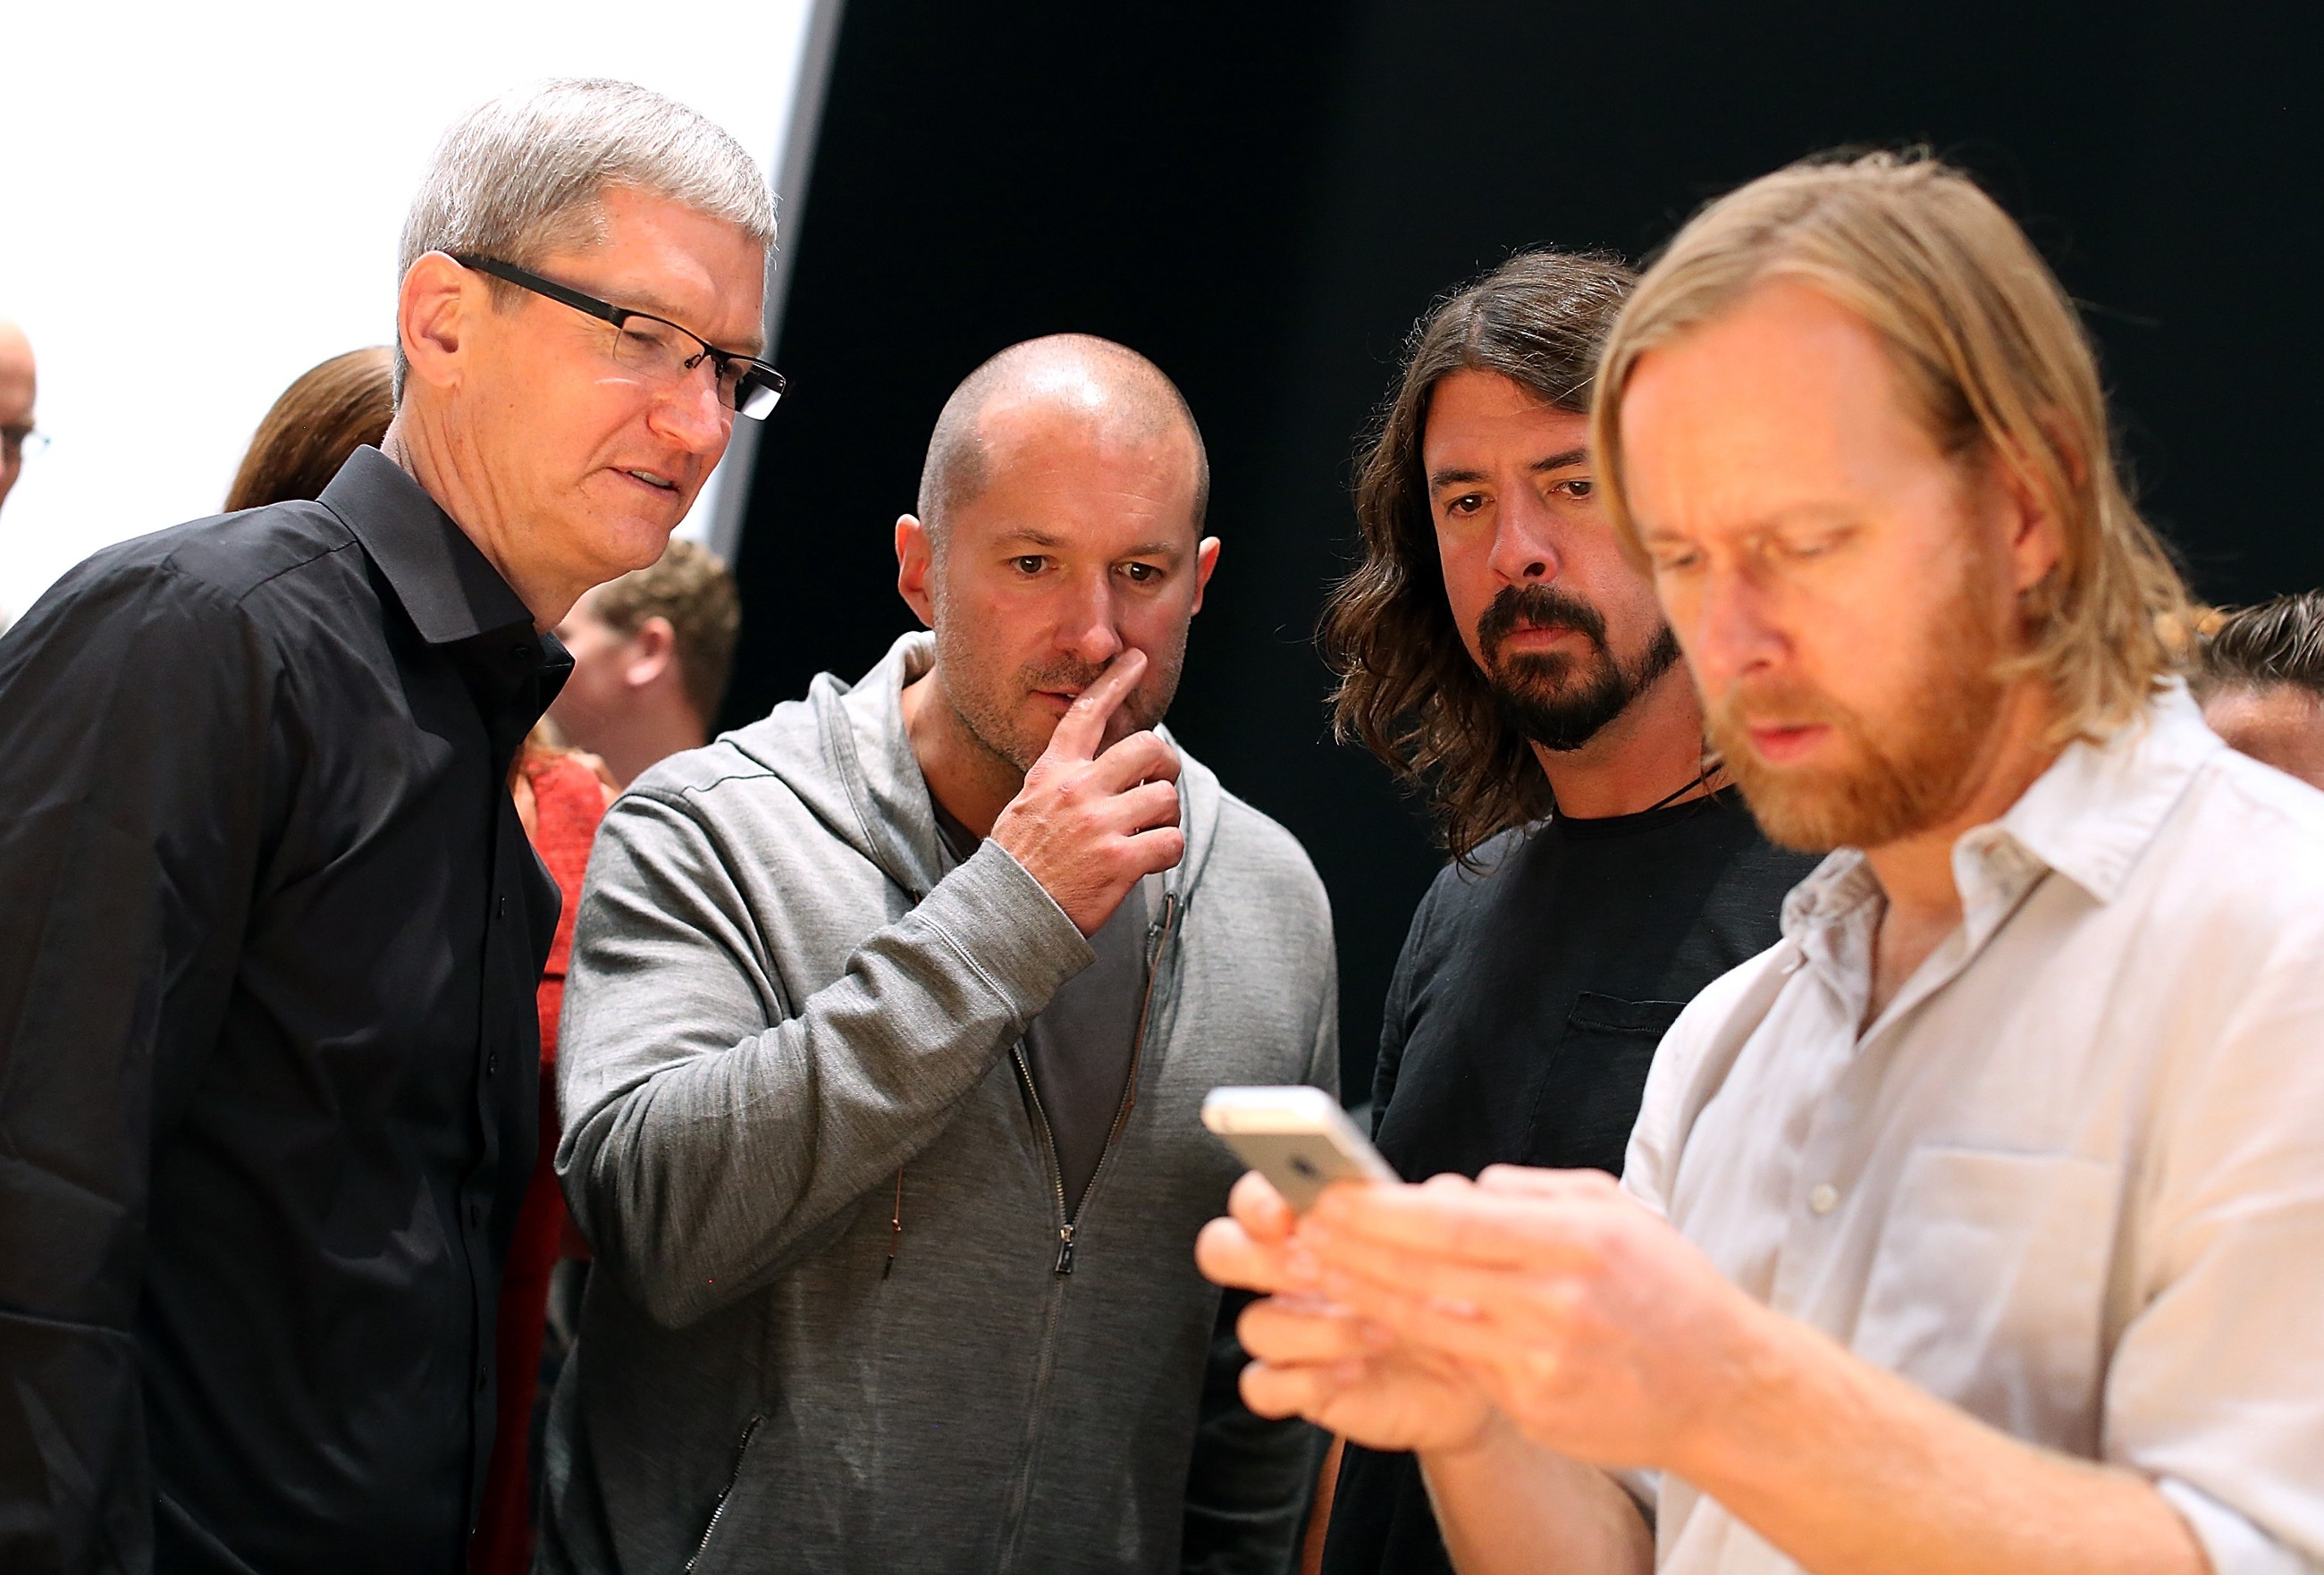 The Jony Ive Principle The Startup Medium